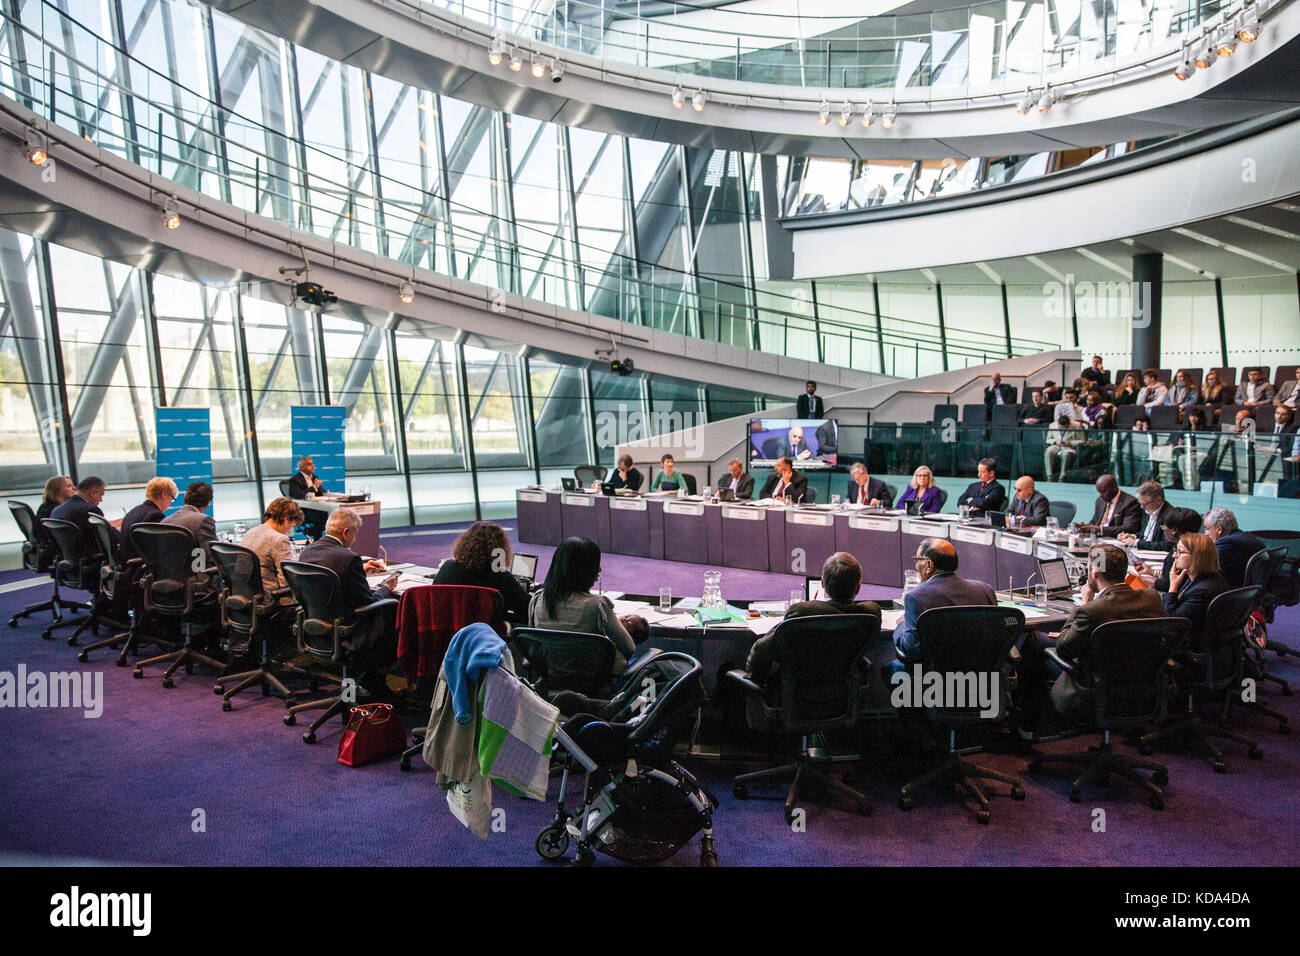 London, UK. 12th Oct, 2017. Mayor of London Sadiq Khan answers questions about subjects including Brexit, Uber, - Stock Image